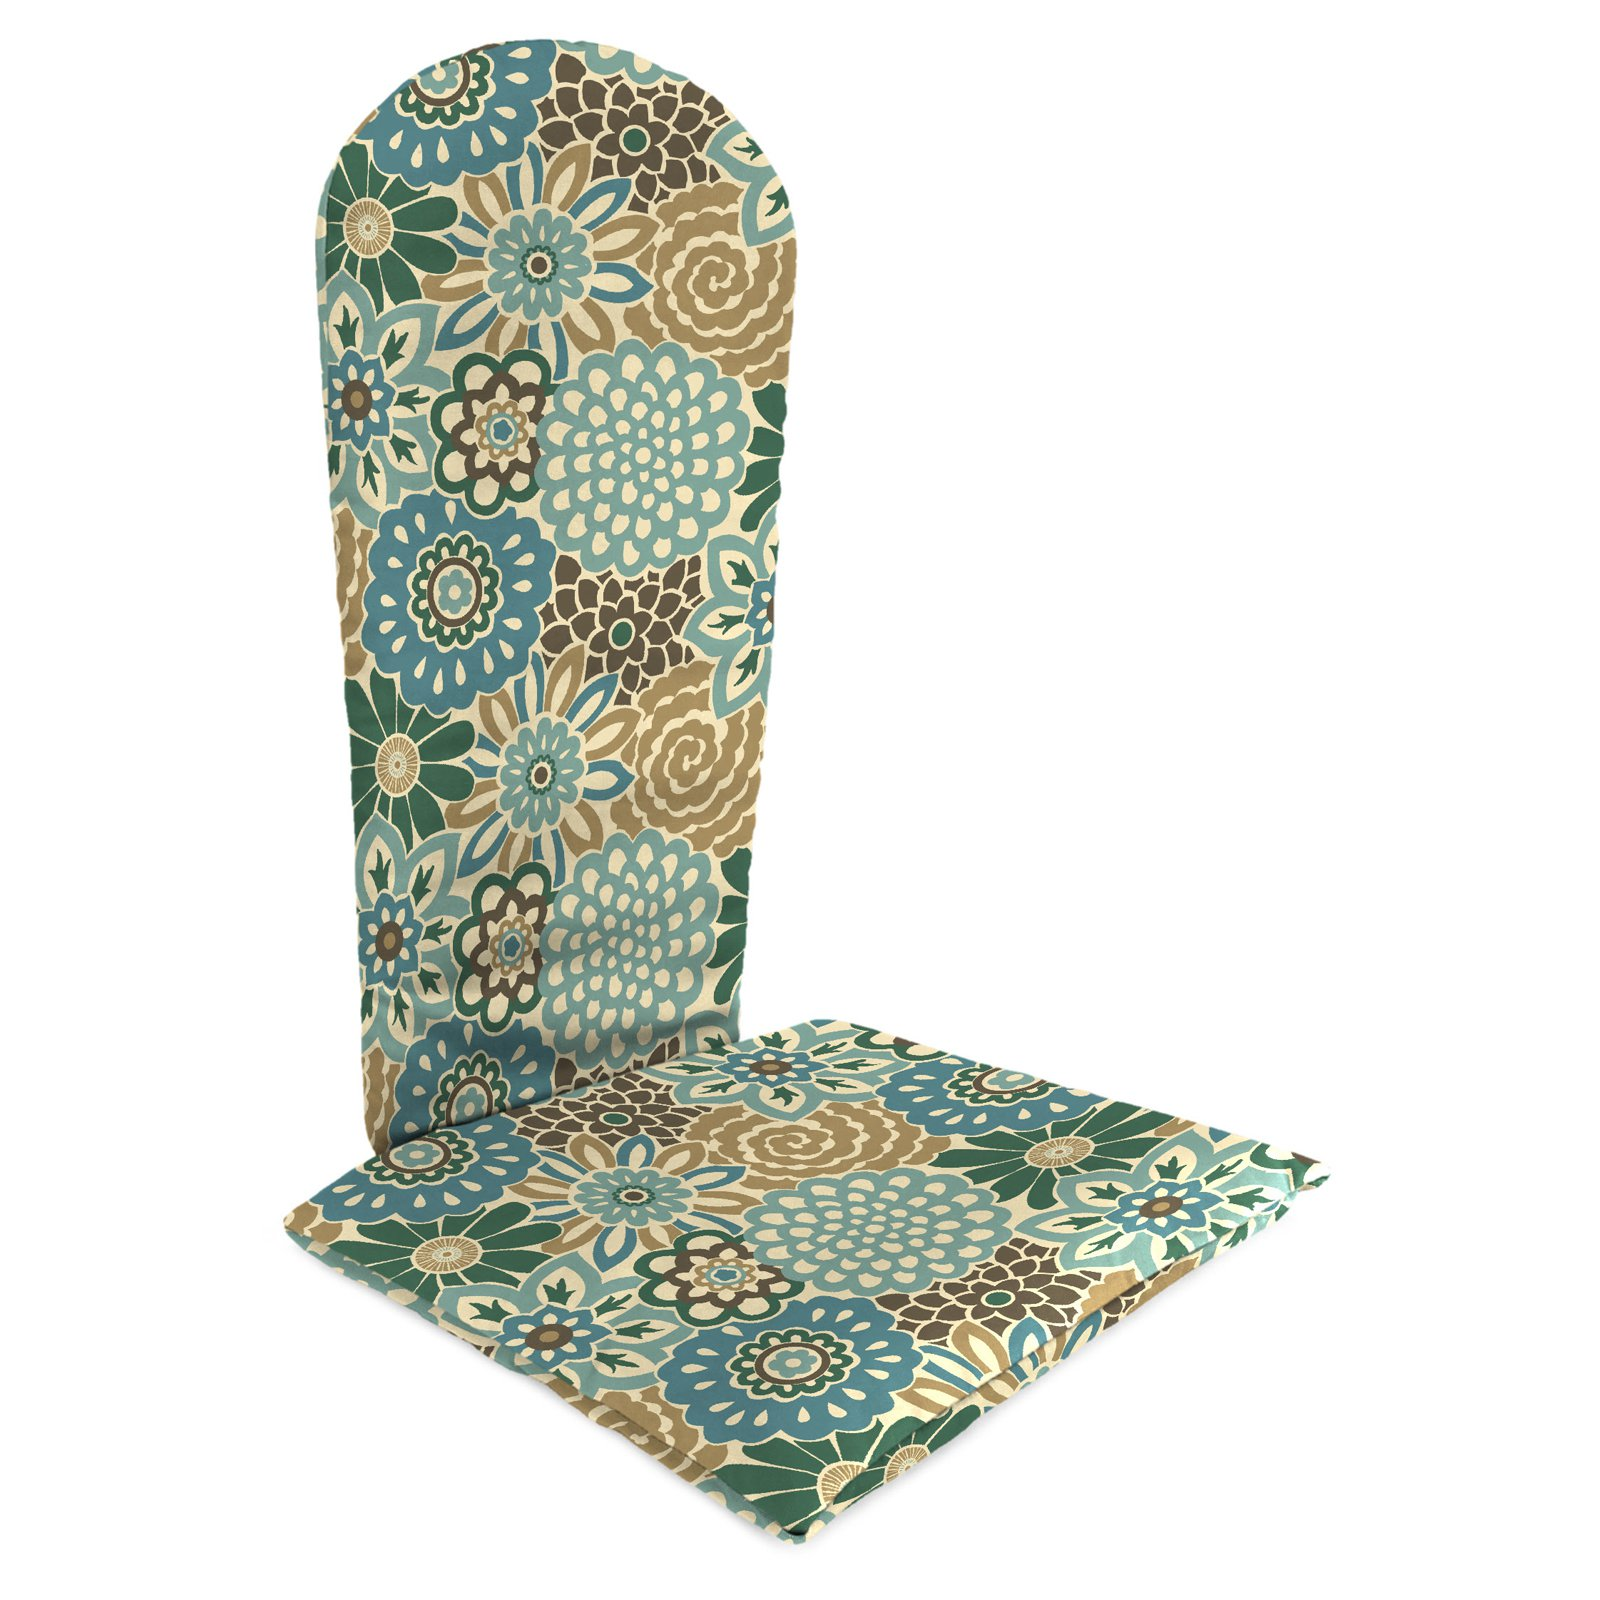 Jordan Manufacturing 49 in. Knife Edge Outdoor Adirondack Chair Cushion - Button Blooms